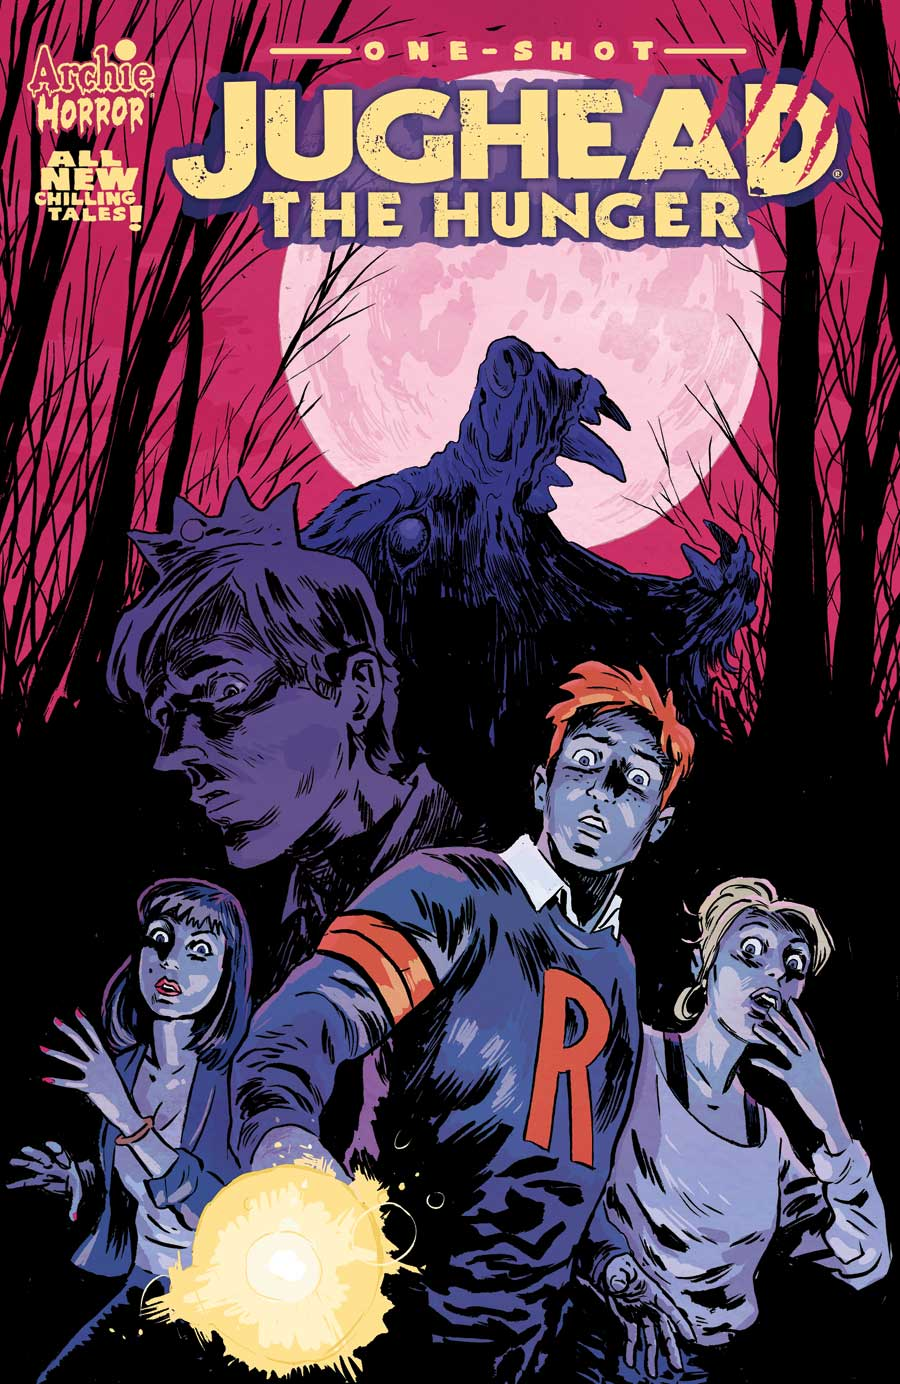 JughHungerOneShotWalsh - Jughead: The Hunger One Shot Comic Arriving in Late March